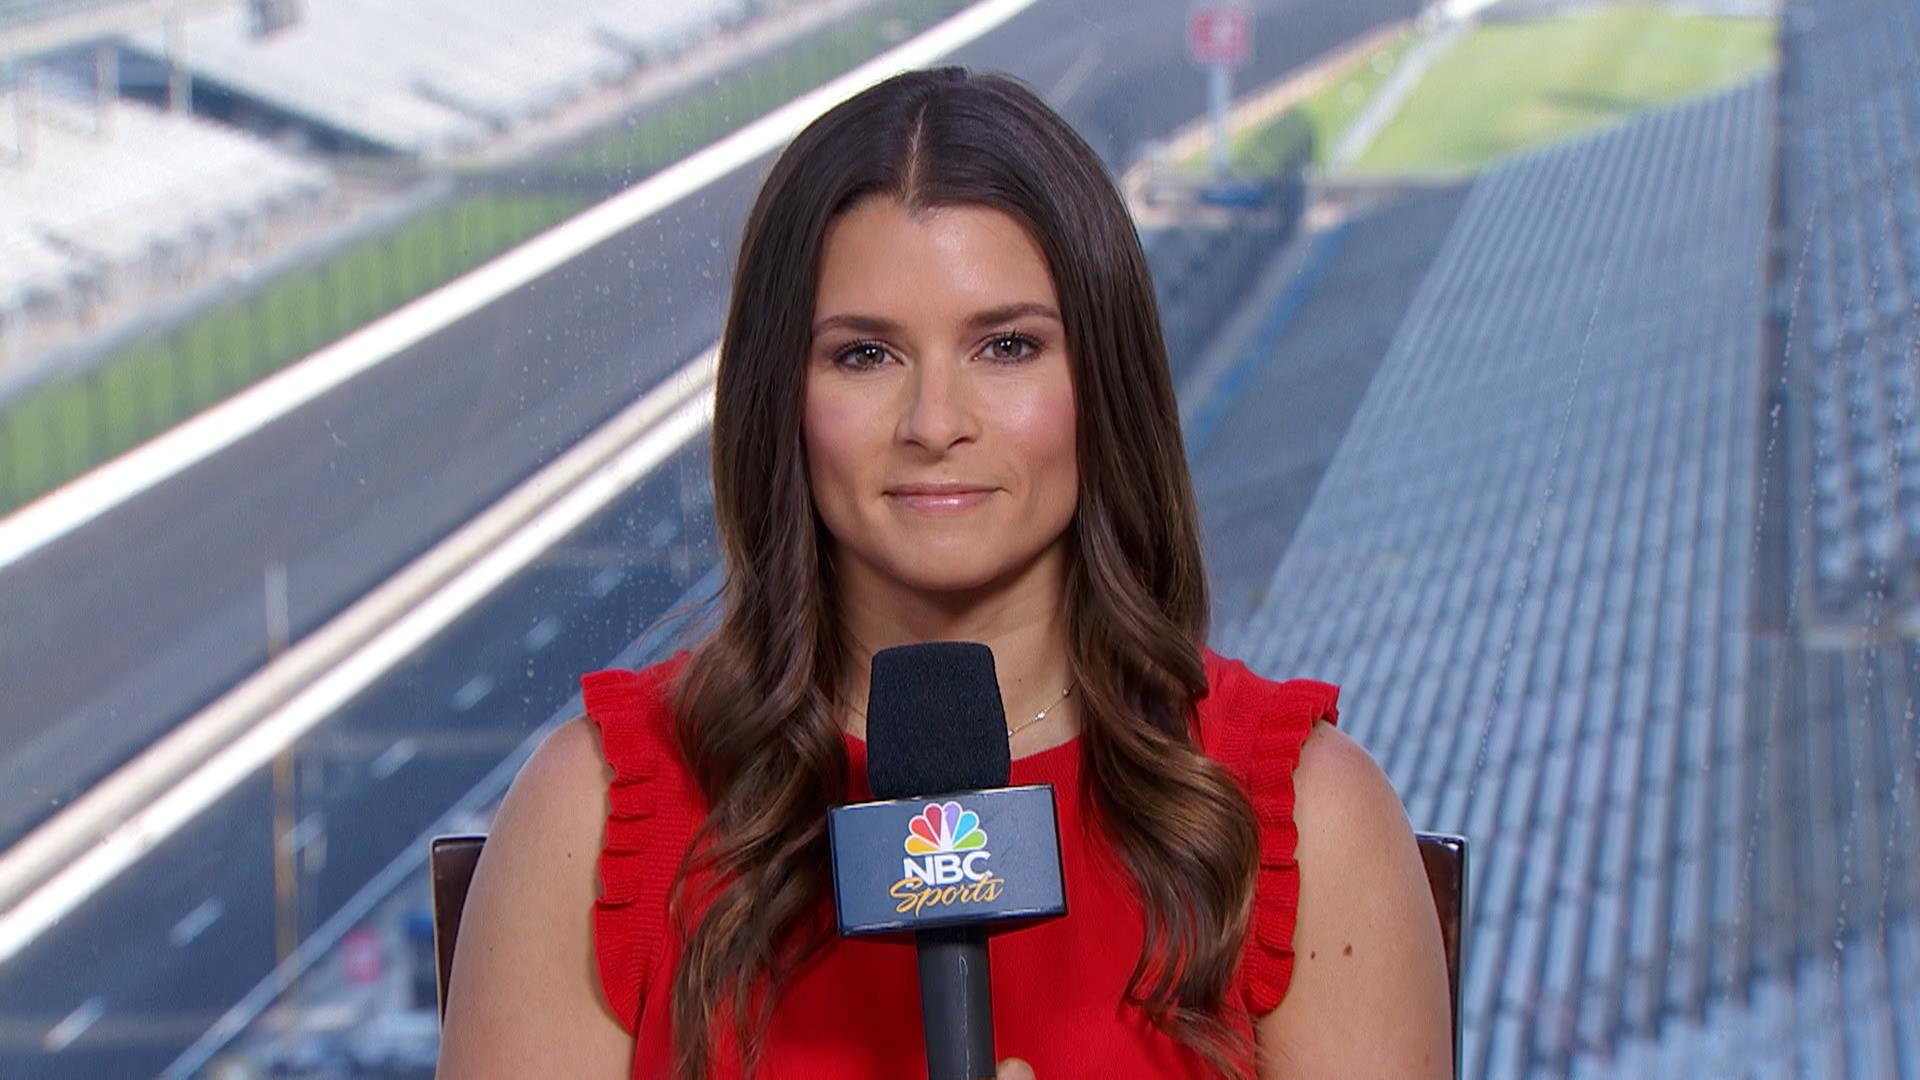 Danica Patrick on what it's like to race in the Indy 500